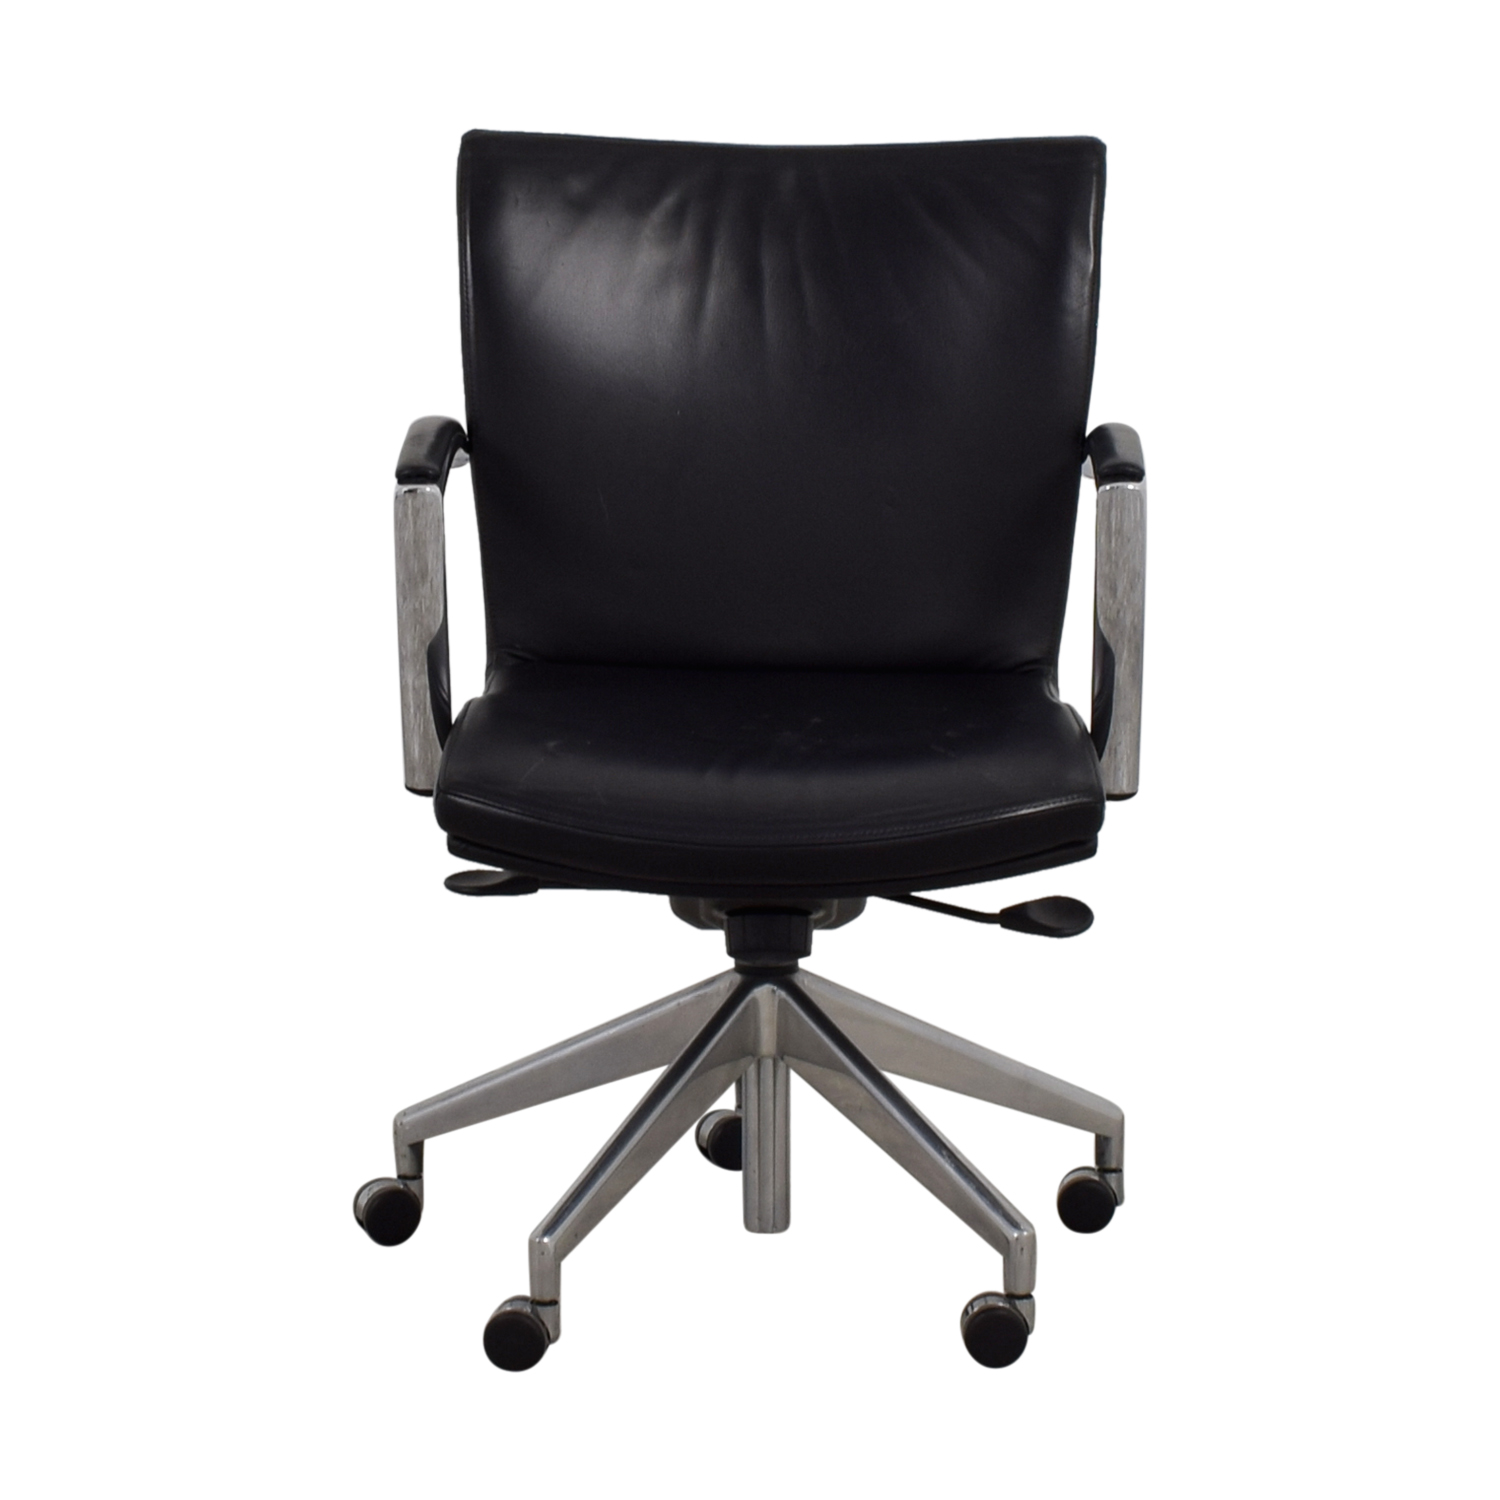 61 Off Black Leather Desk Chair Chairs